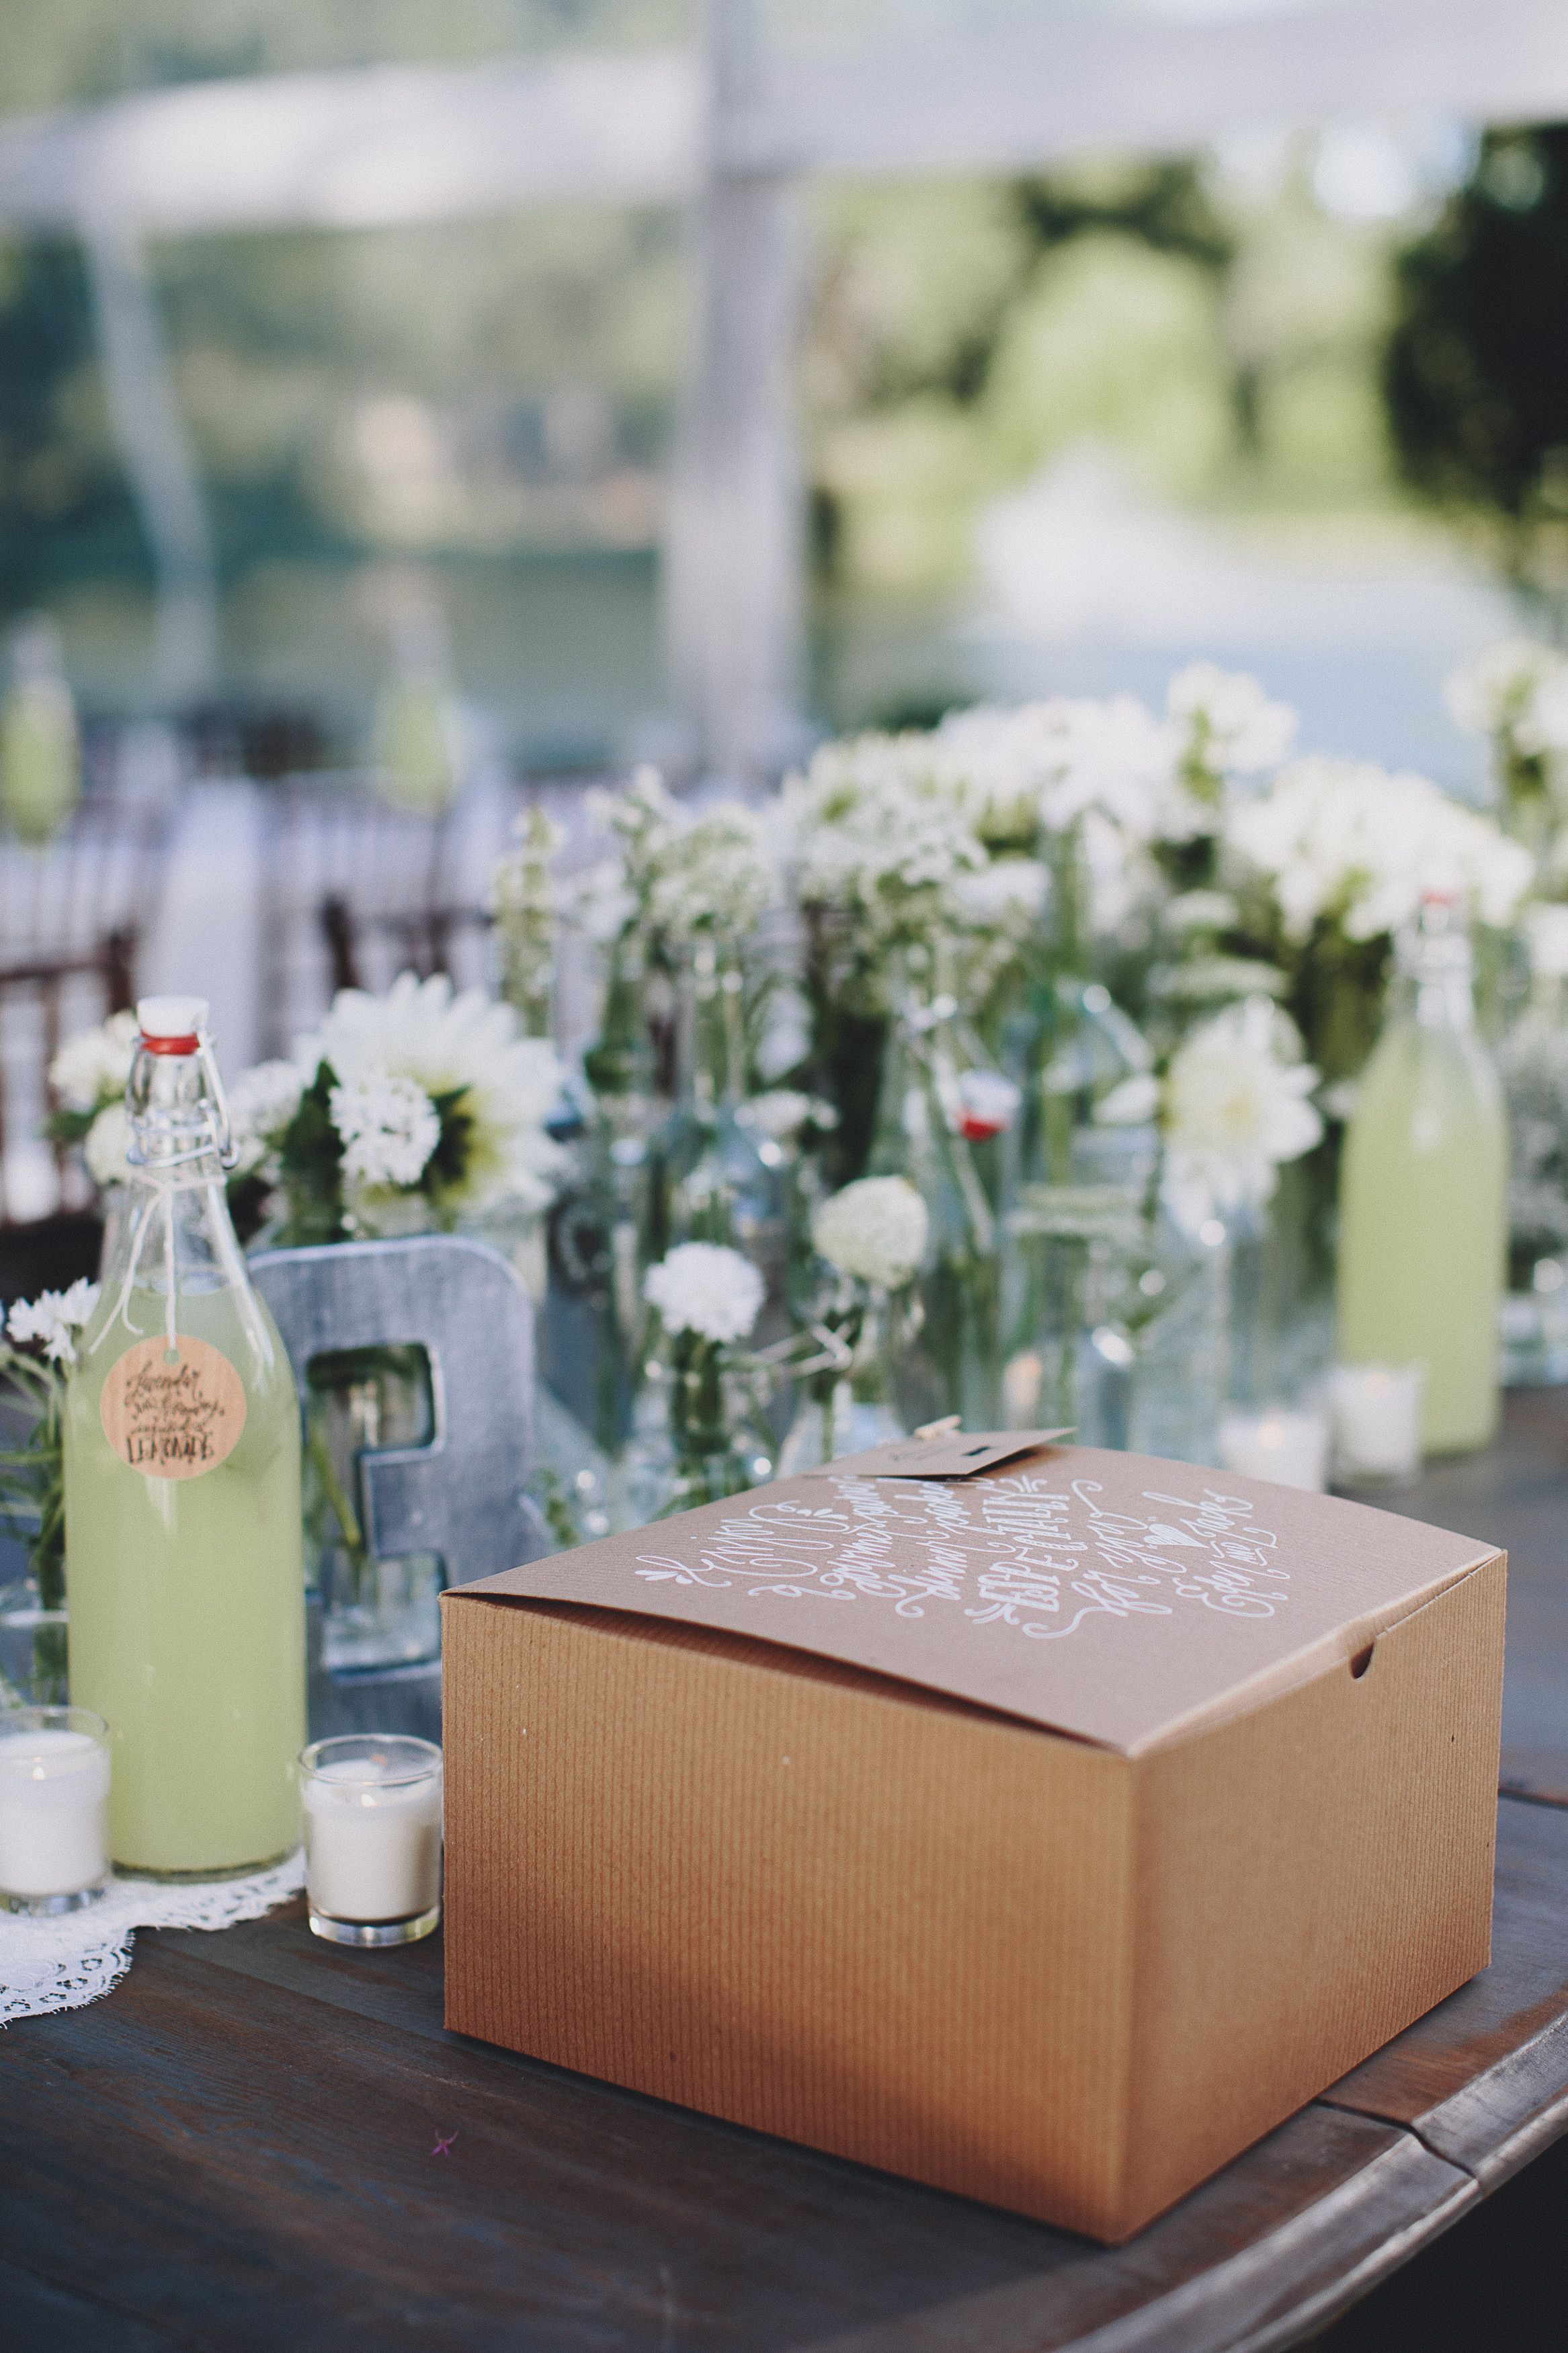 A simple picnic tablescape with boxed lunches and lemonade